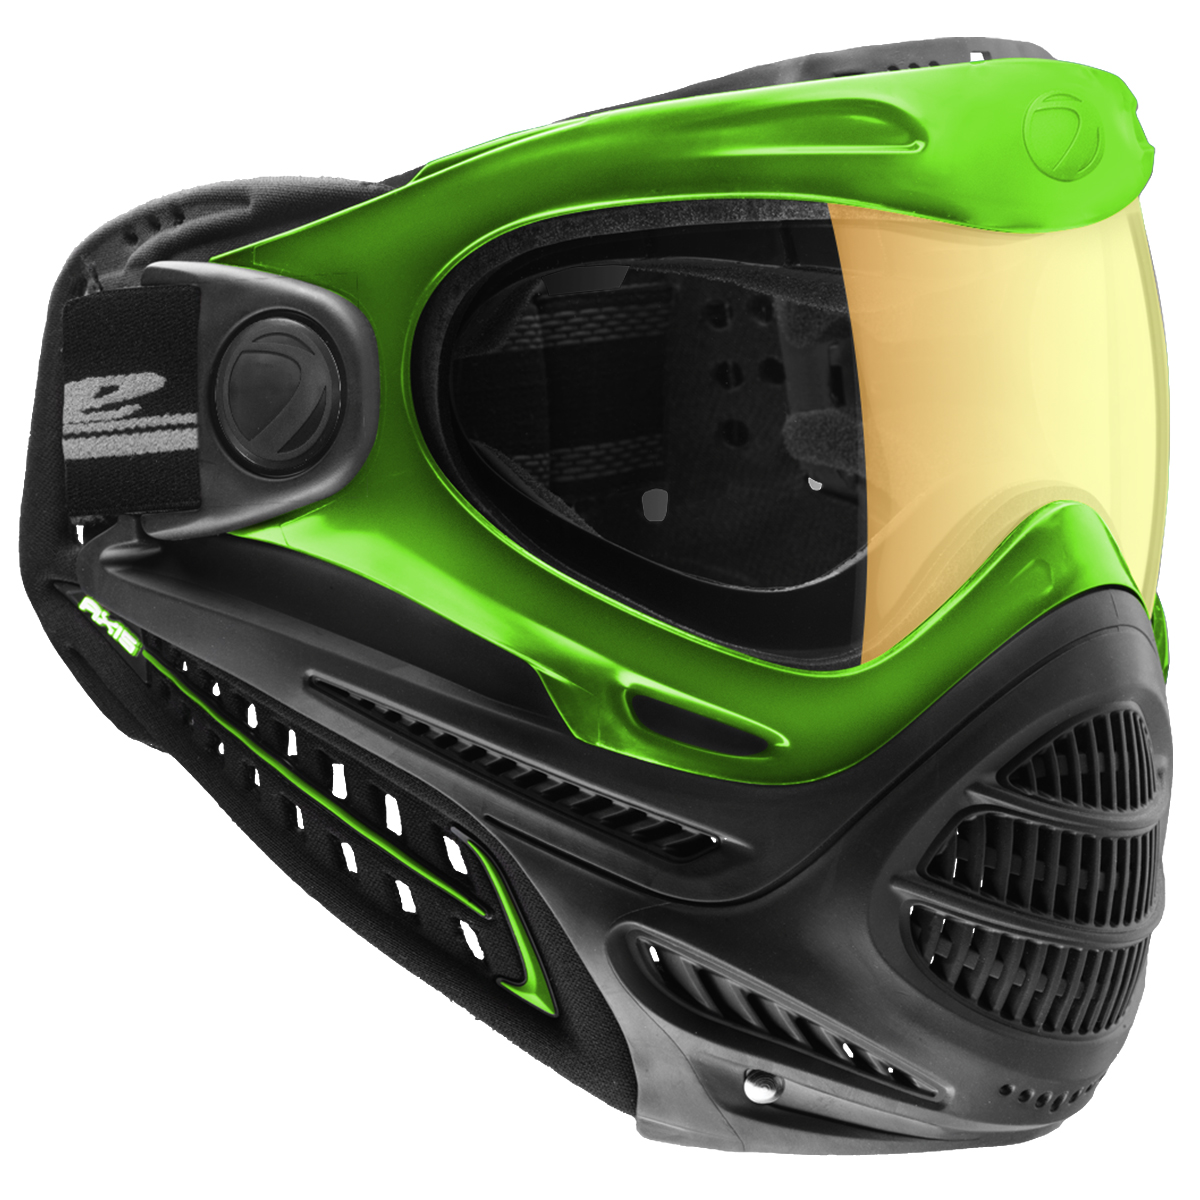 Dye Axis Pro Goggles w/ Thermal Lens - Lime Northern Lights